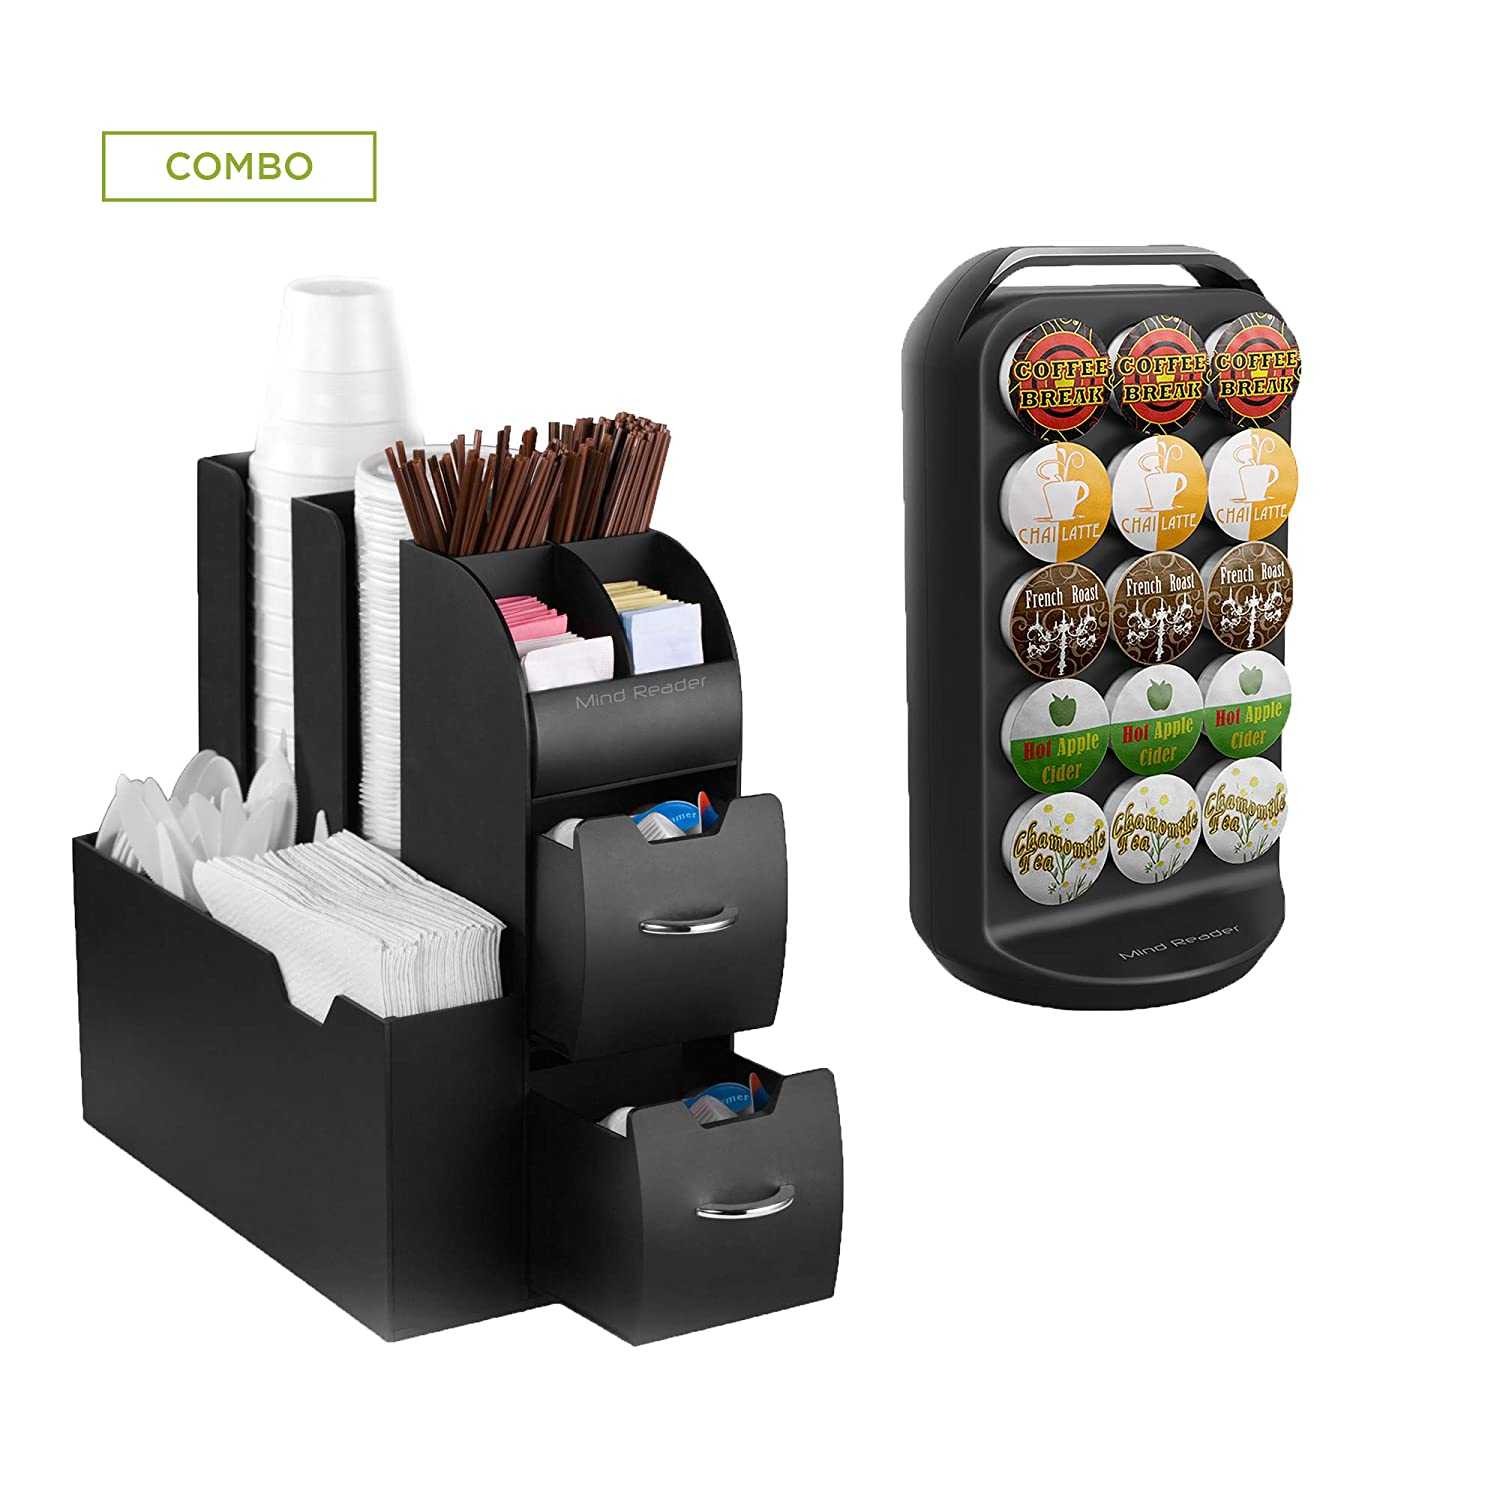 Mind Reader CRSCAD-BLK K-Cup Carousel and Coffee Condiment Caddy Organizer, Coffee Pod Holder, Capacity 30 K-Cups, Black